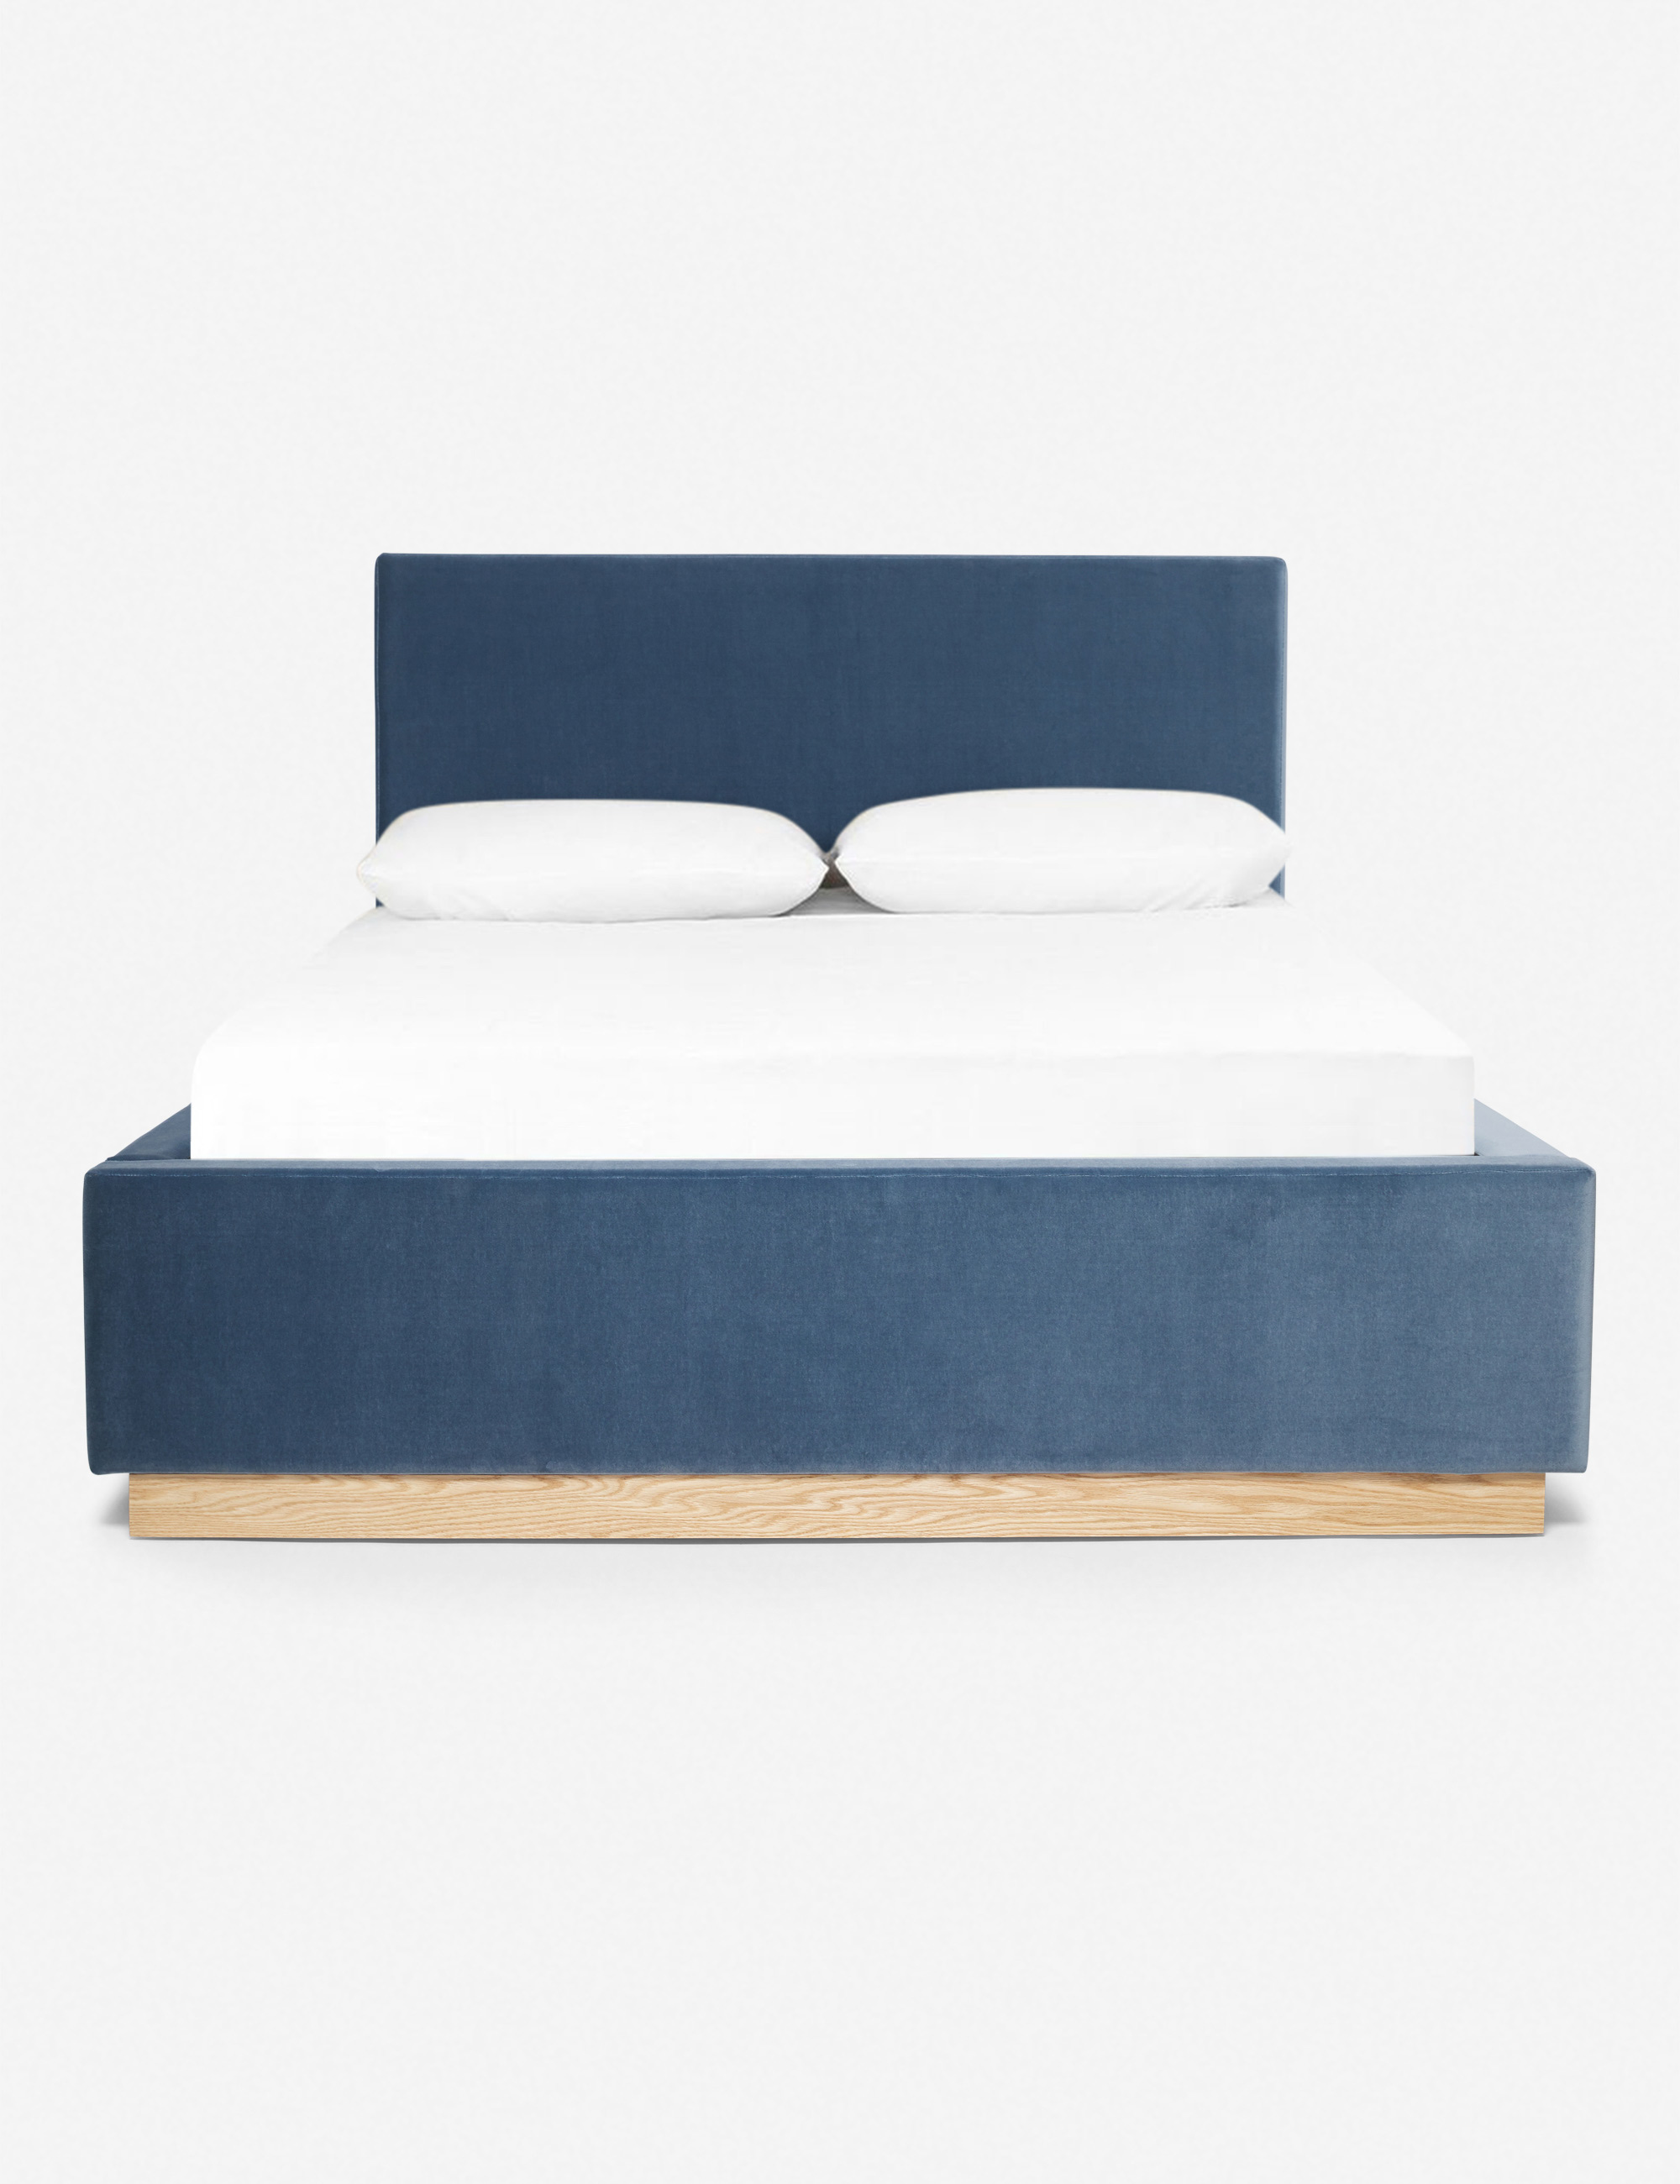 GINNY_MACDONALD_Lockwood-Bed-Velvet-Harbour-3